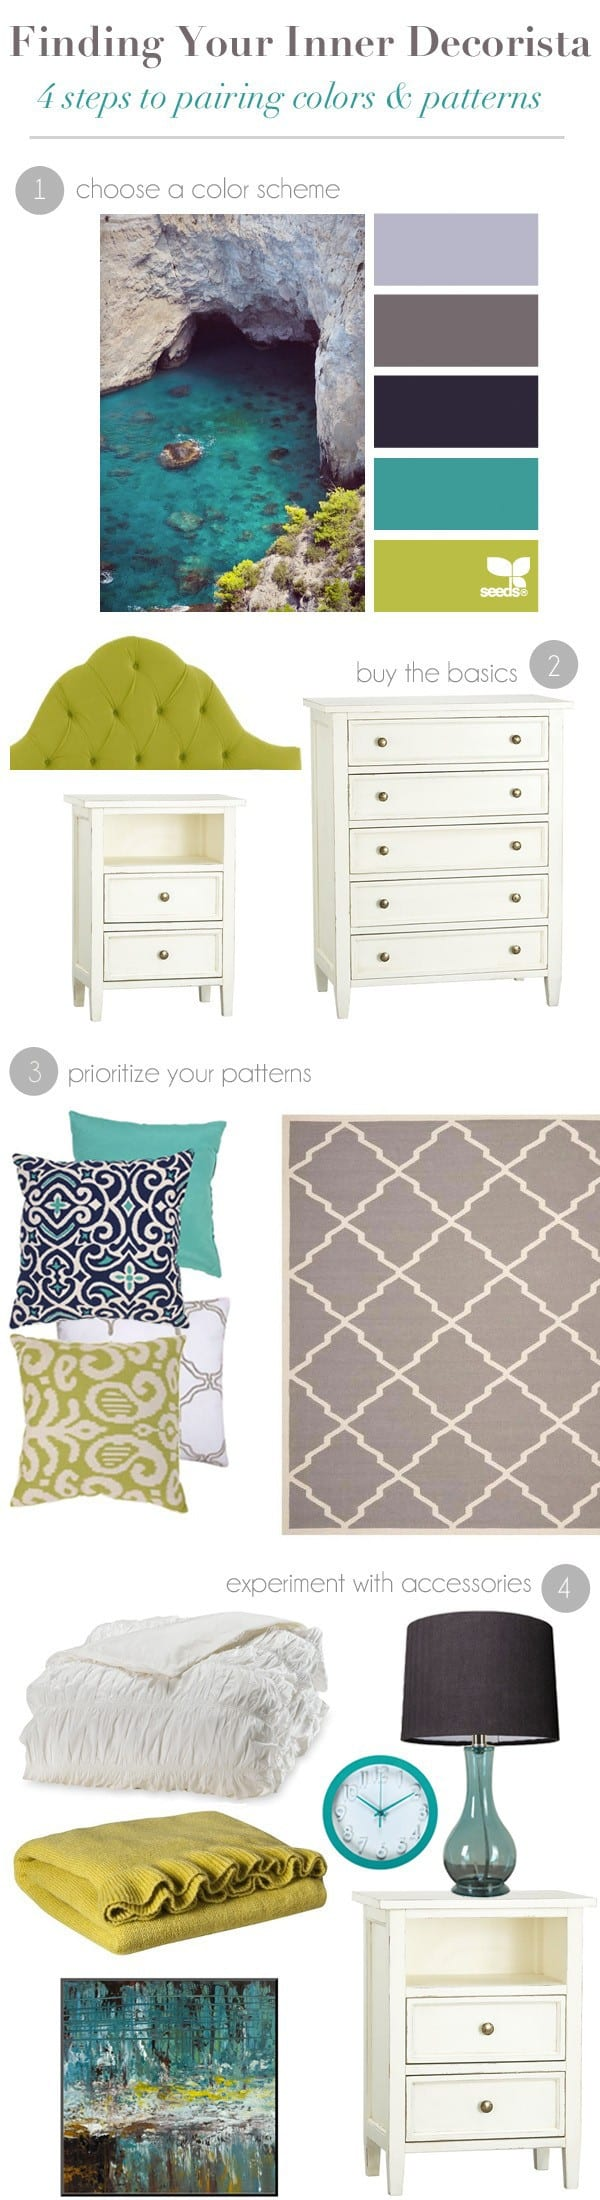 Target color and pattern post